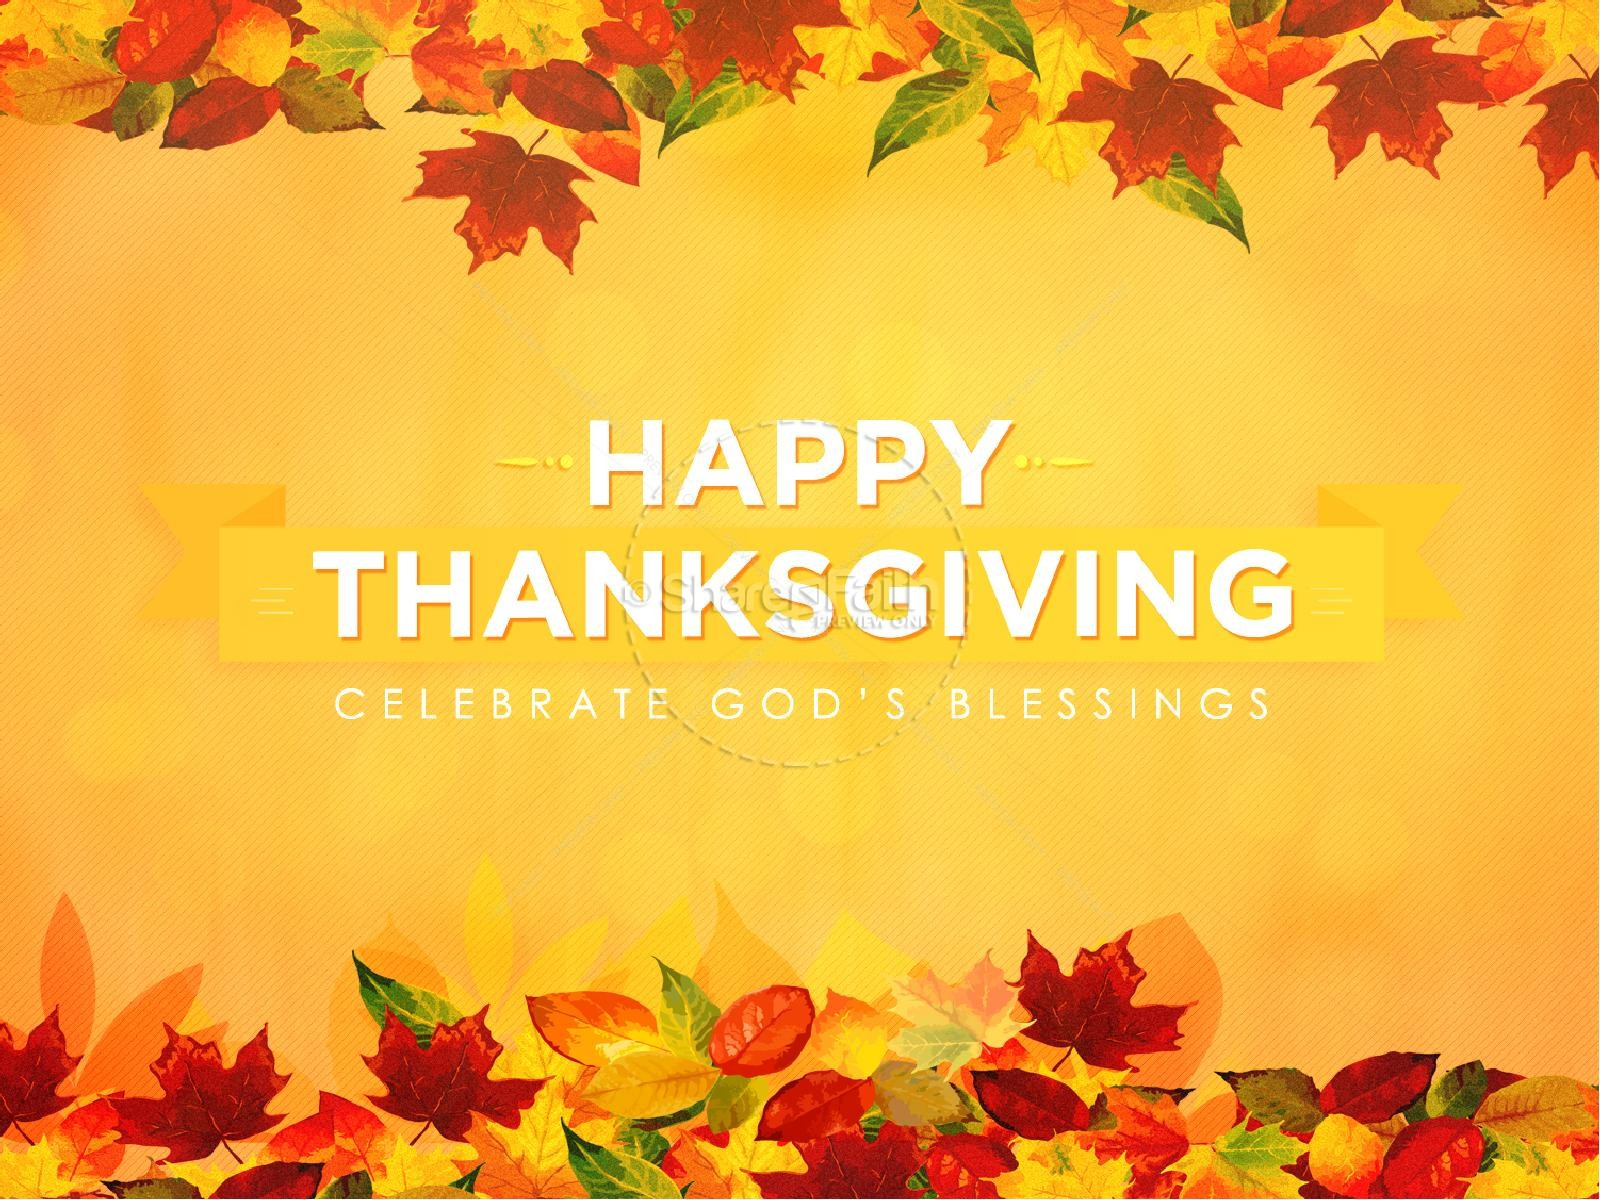 Happy Thanksgiving Blessings Wallpaper